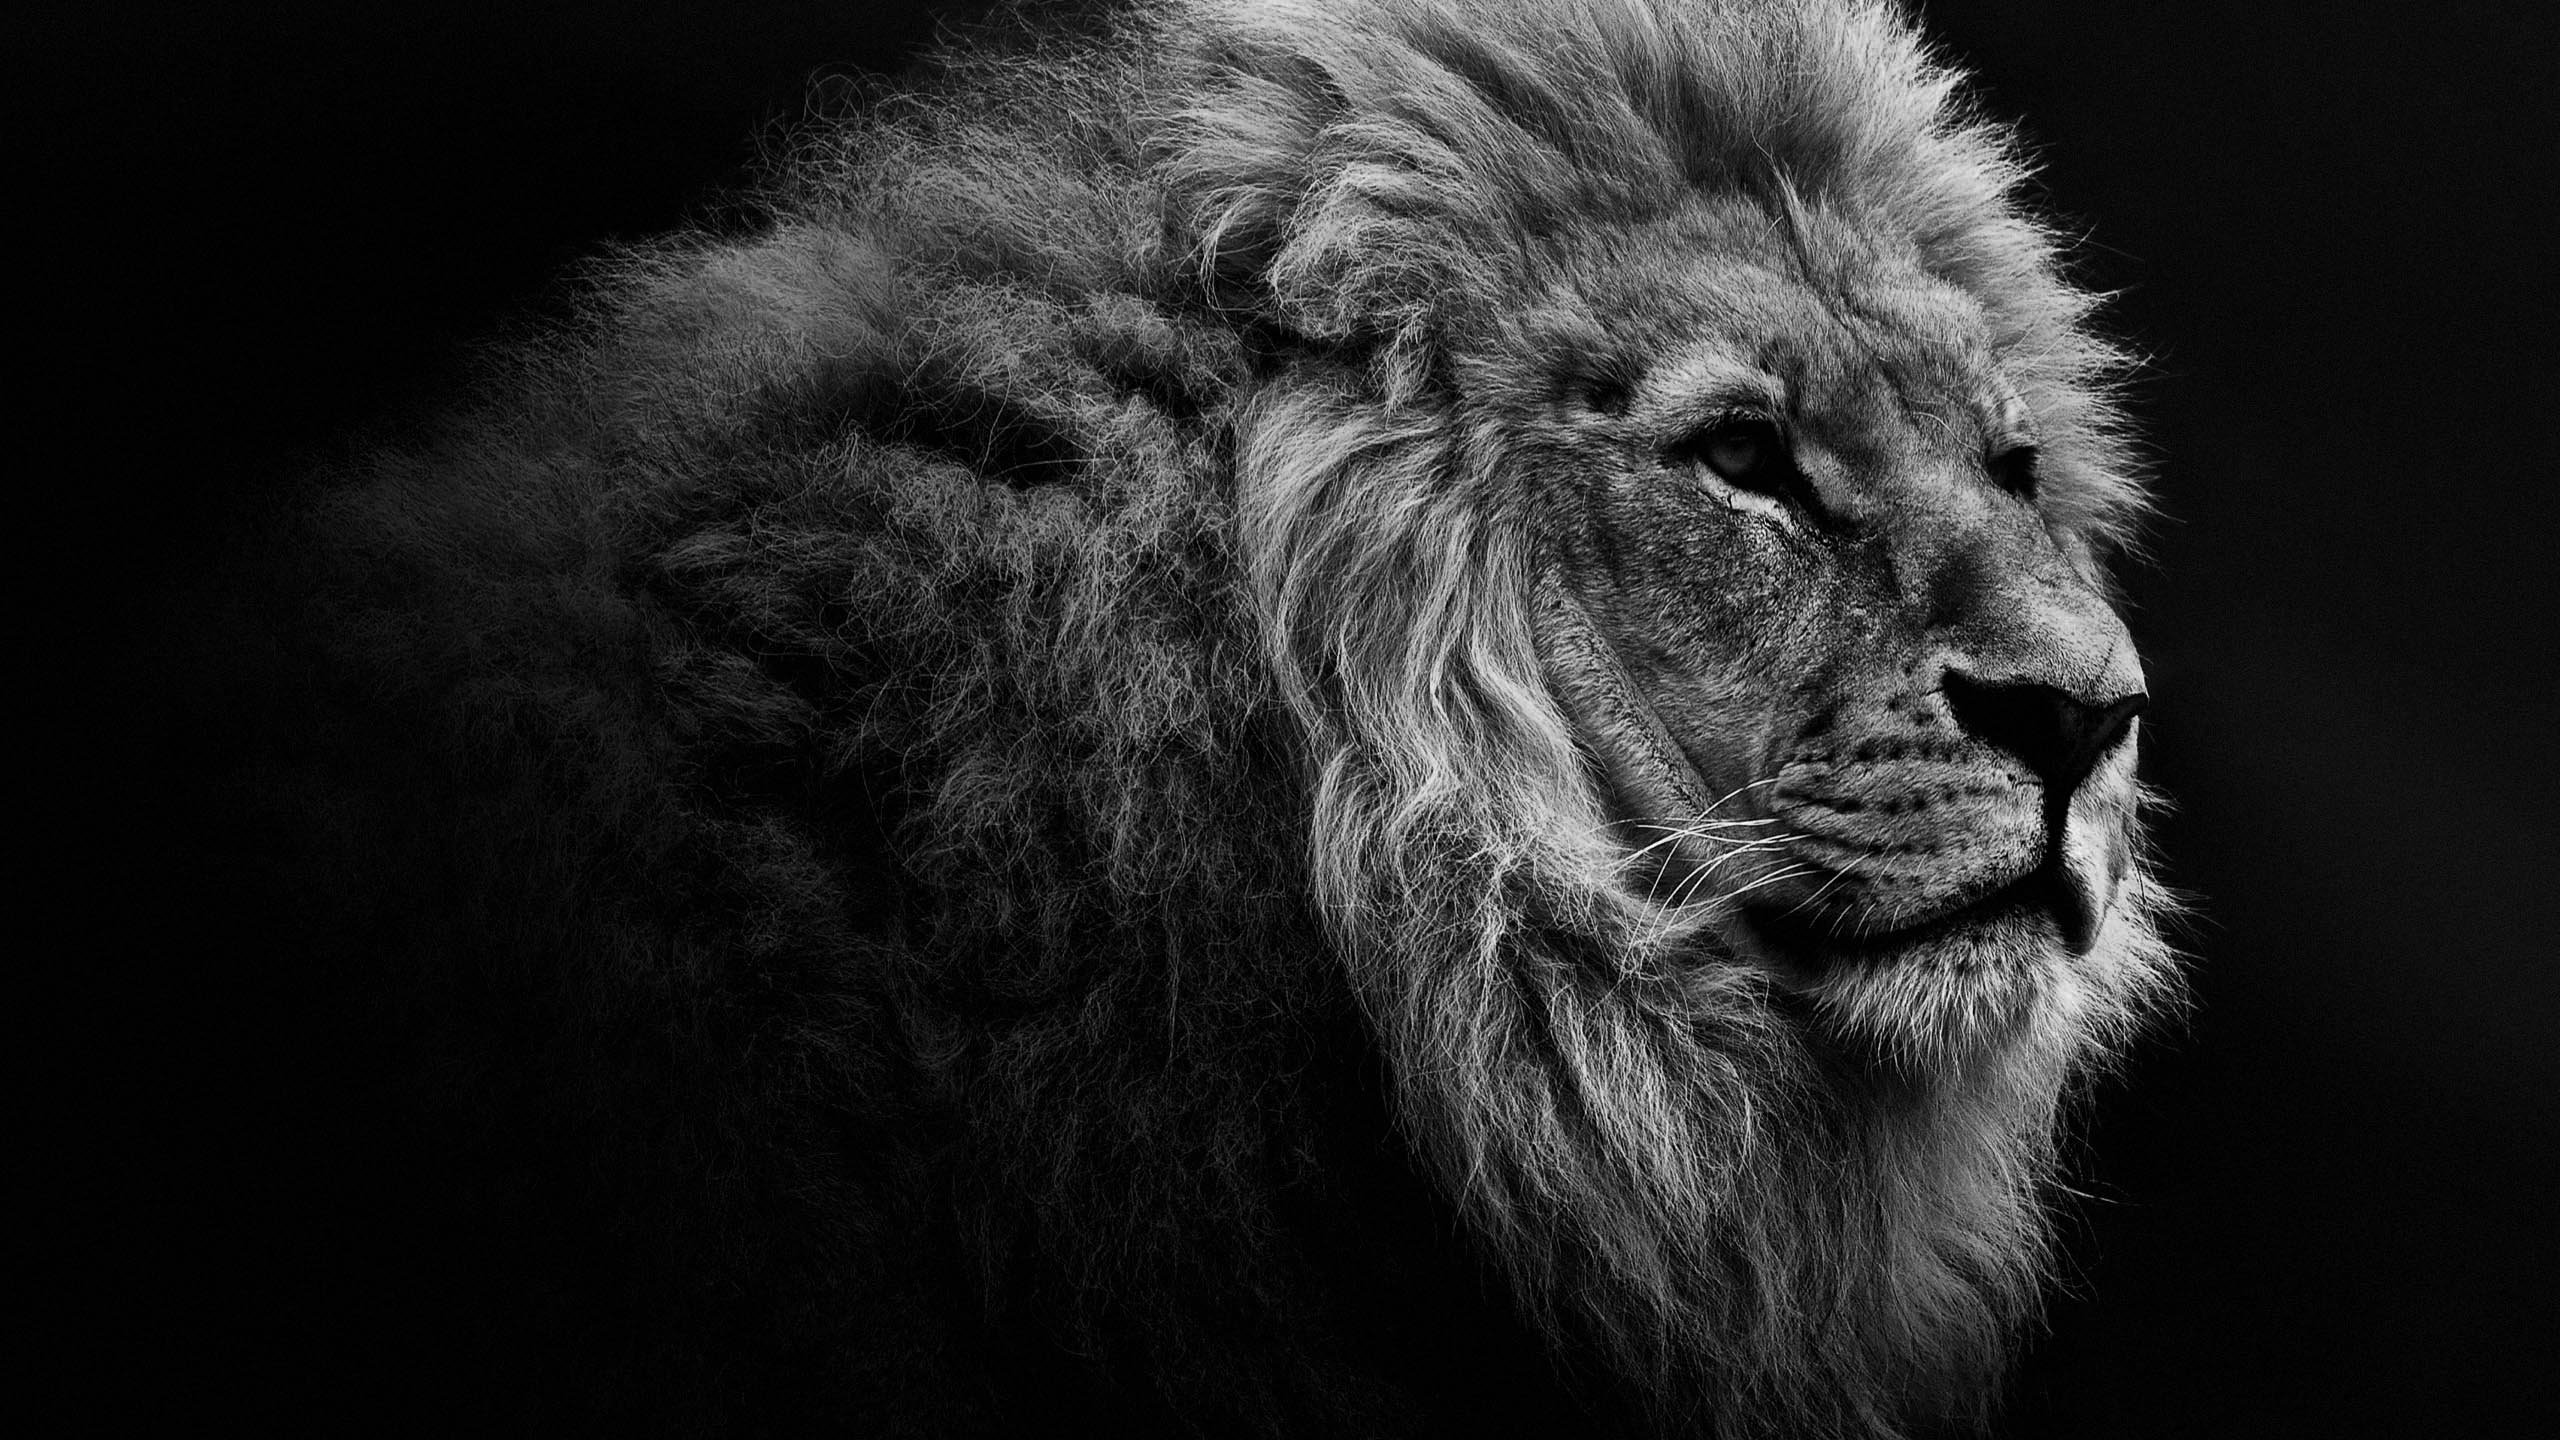 lion portrait bw desktop wallpaper